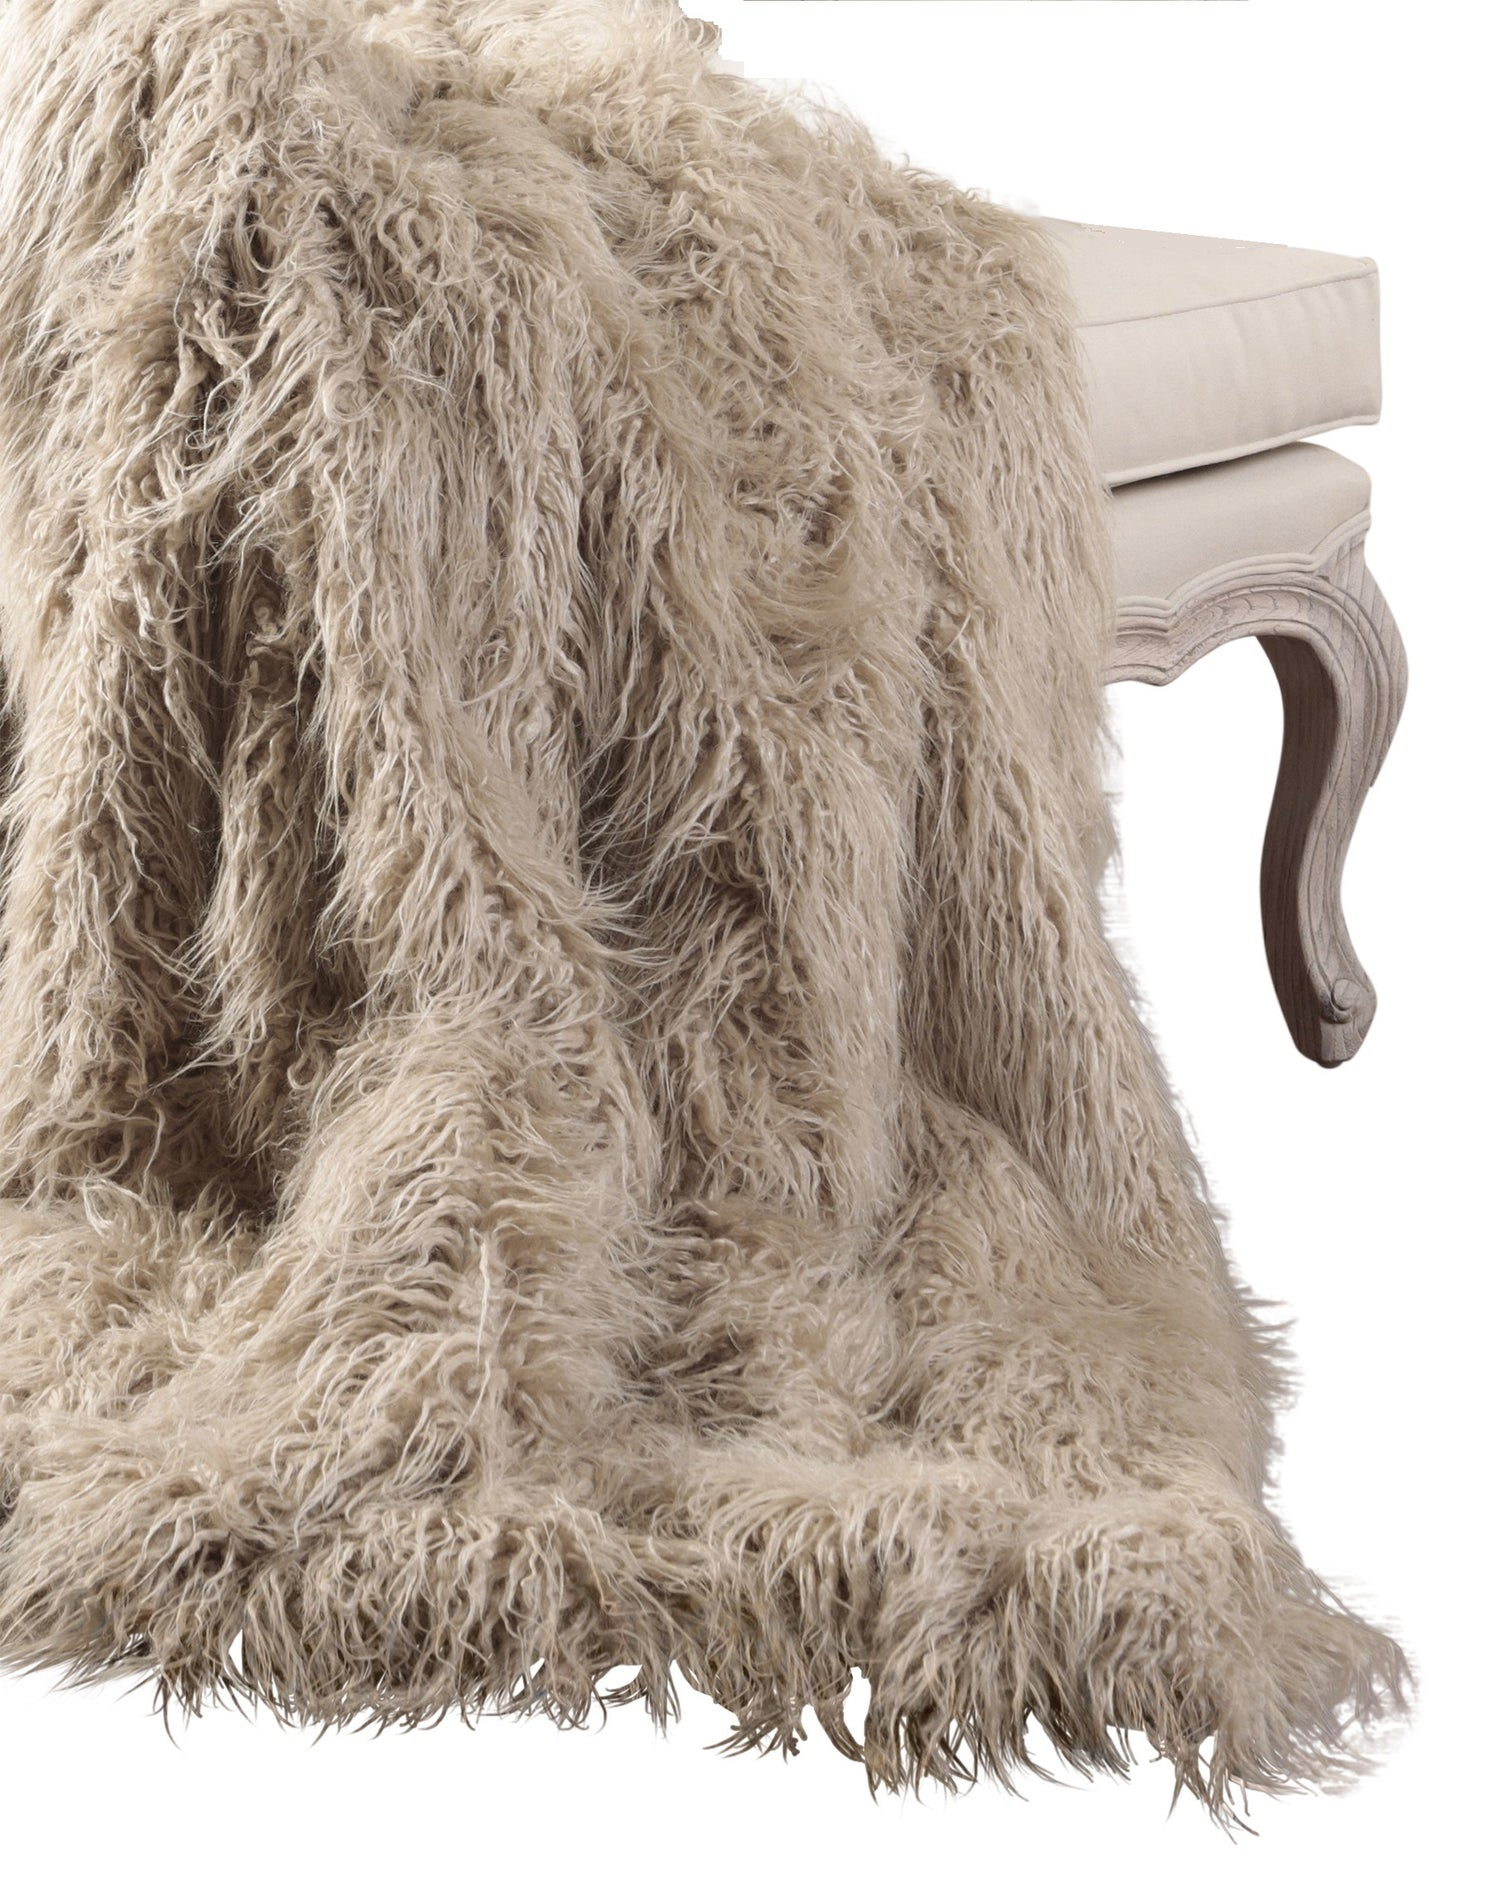 Image of 676685041692 PLANO MONGOLIAN SHEEPSKIN FAUX FUR 50X70